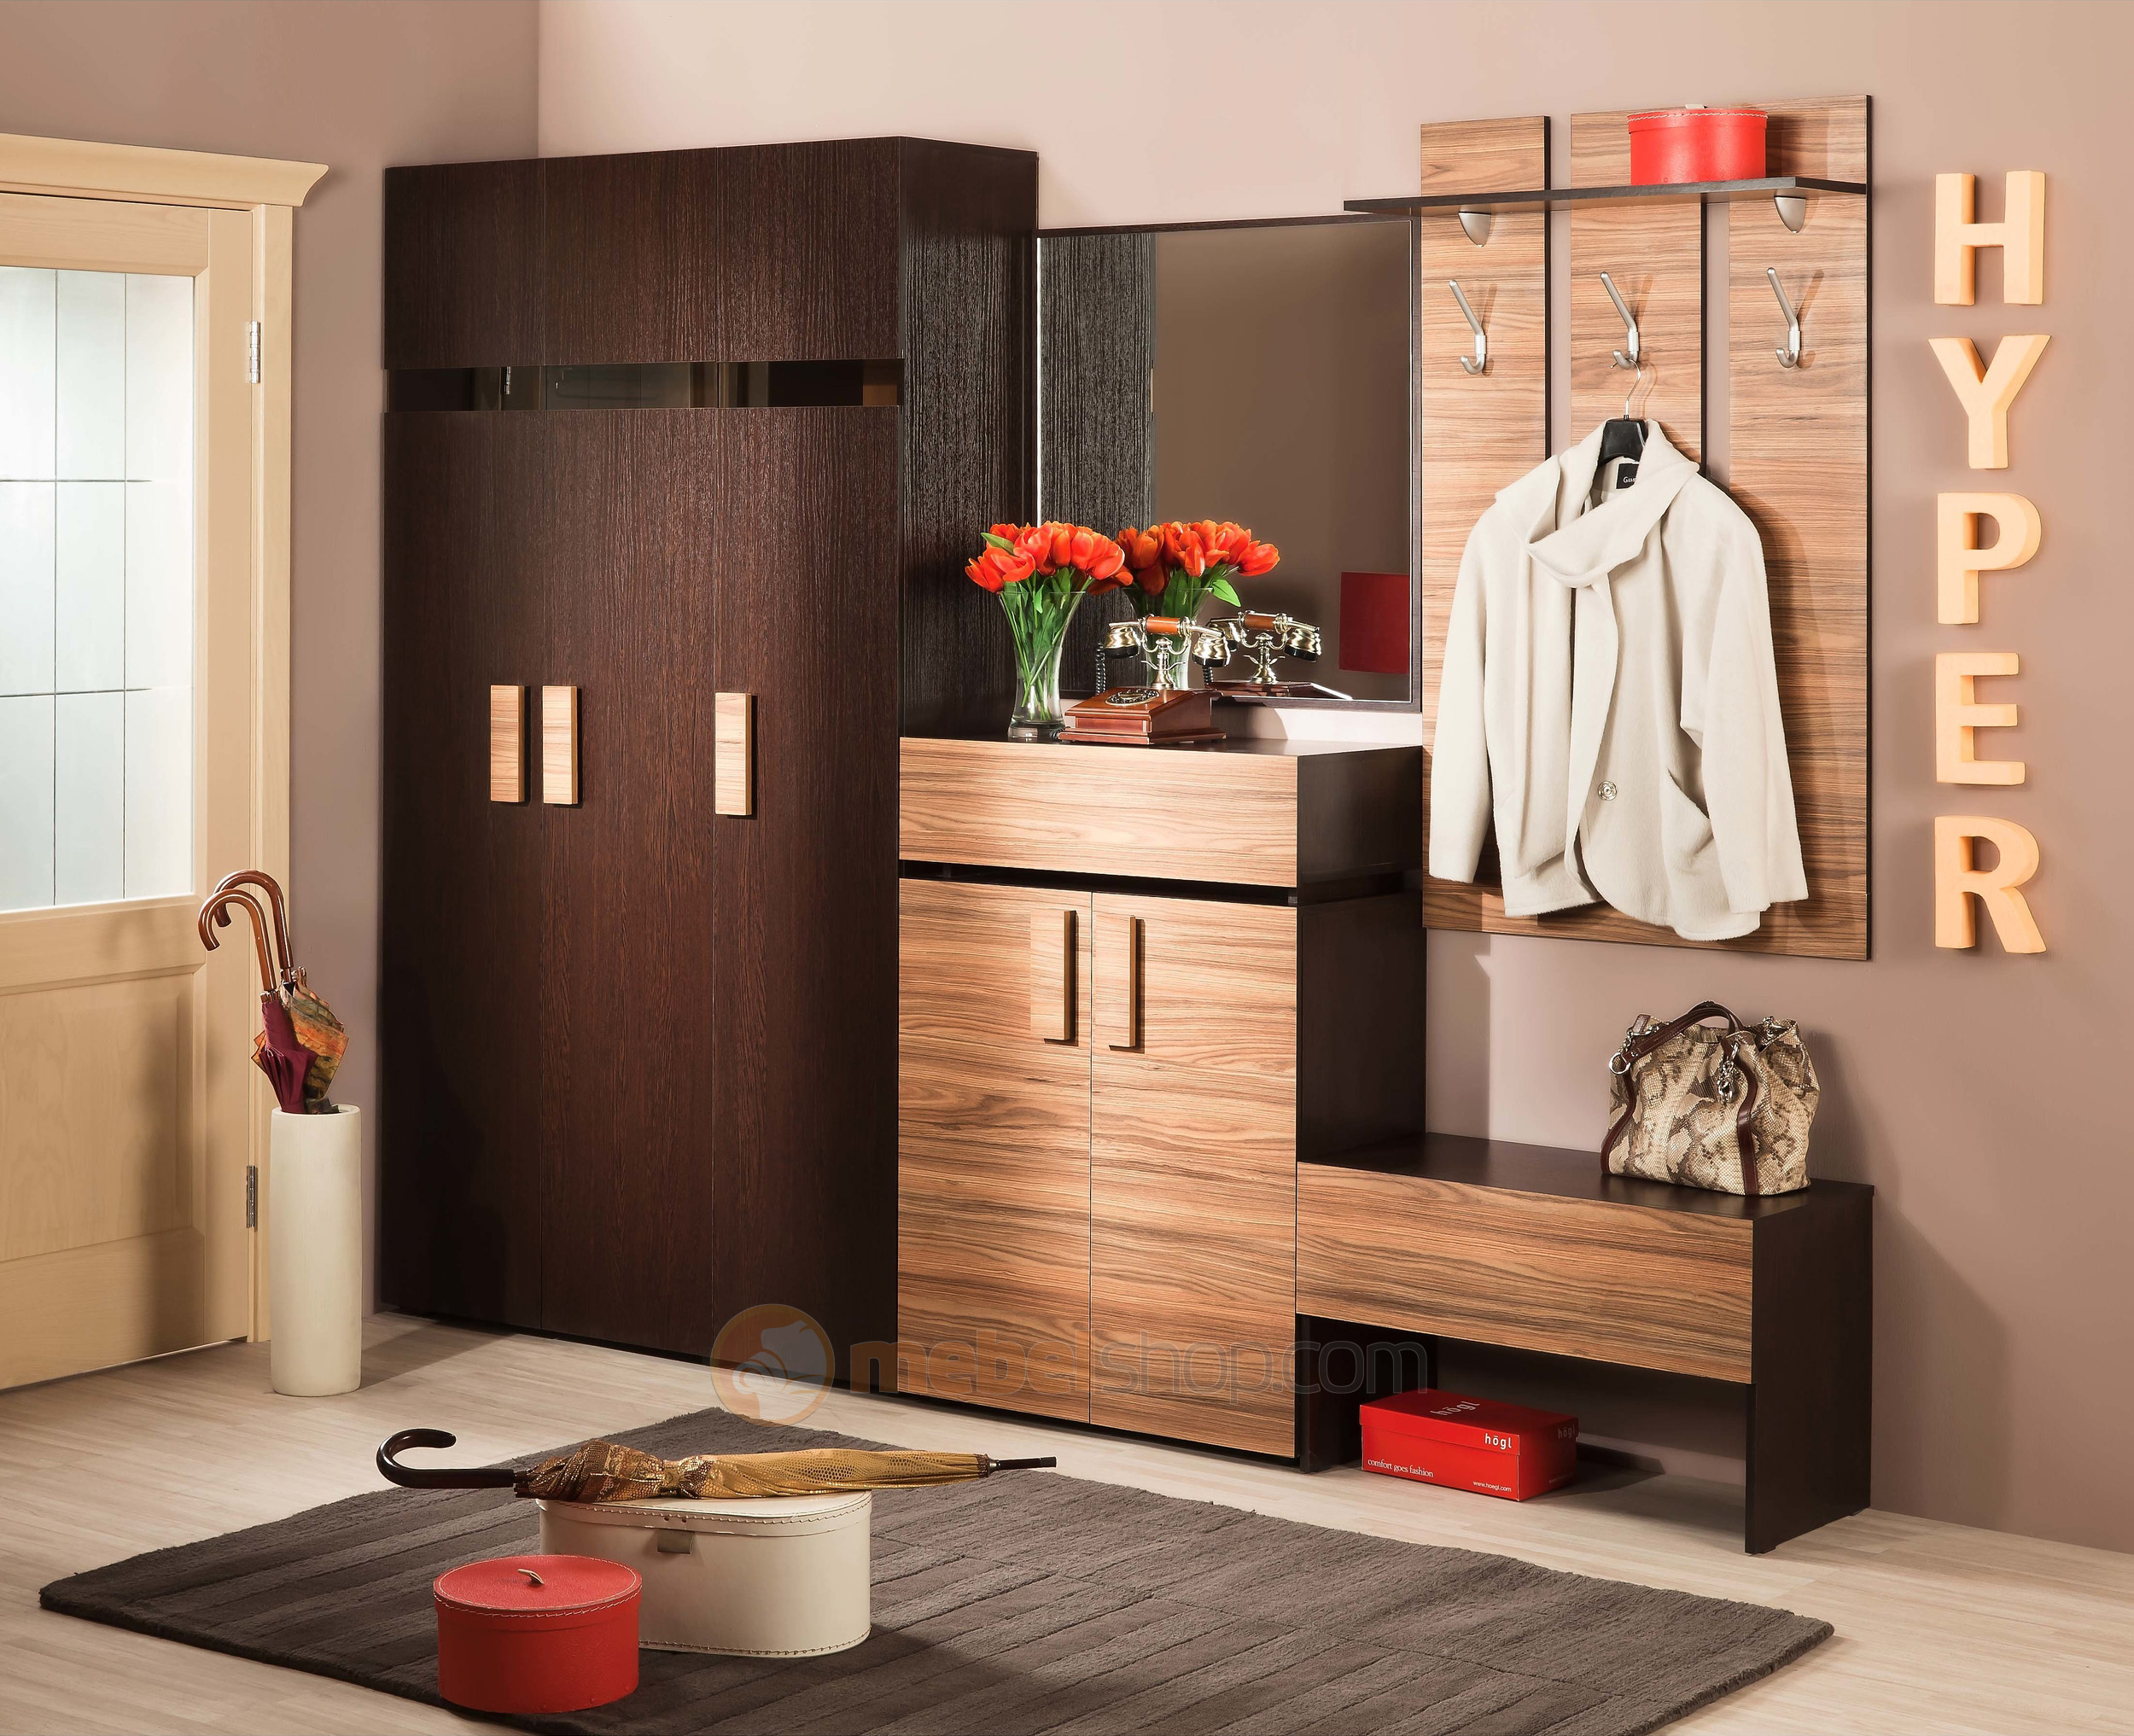 Hall storage furniture.